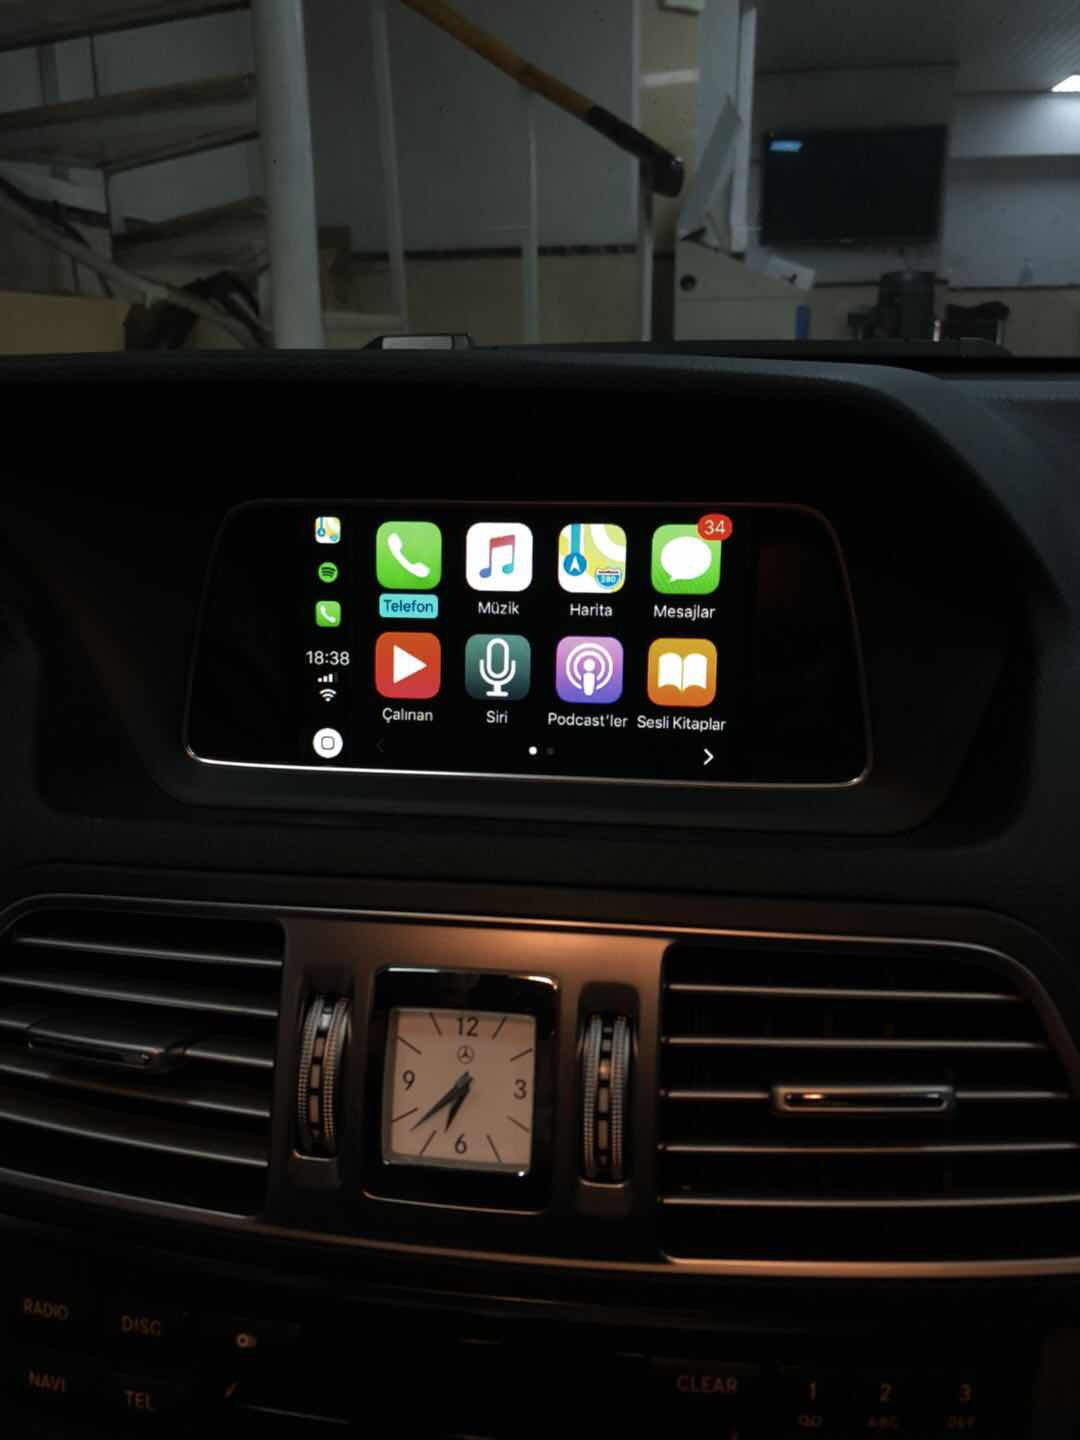 Unichip Carplay Retrofit For 2015 E300 C207 Ntg45 Navi Mbworld Wiring Diagram Hi Guys We Just Retrofitted The Its A Welcome Any Comments From Teccom